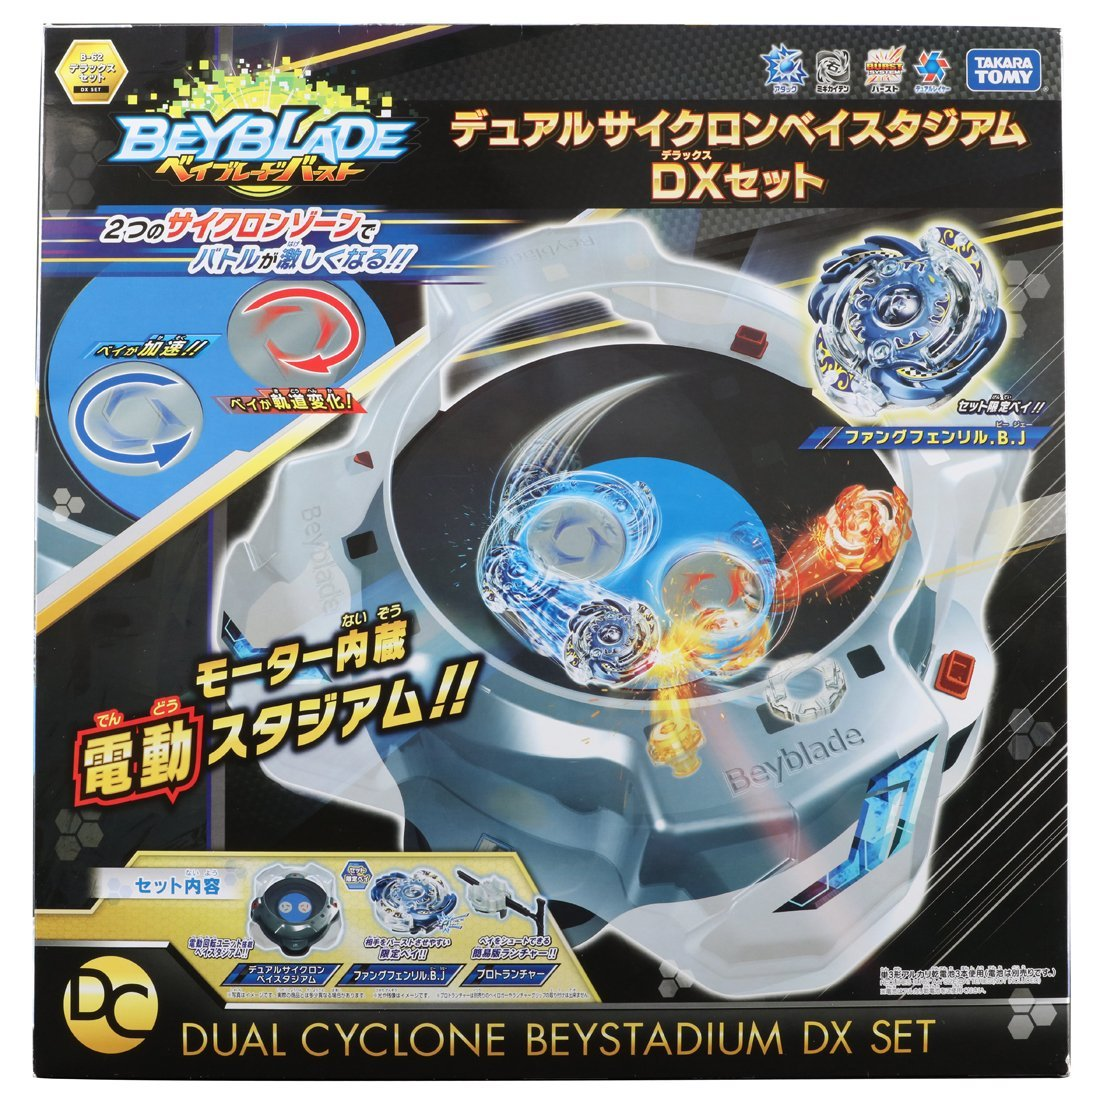 Dual Cyclone Beystadium DX Set